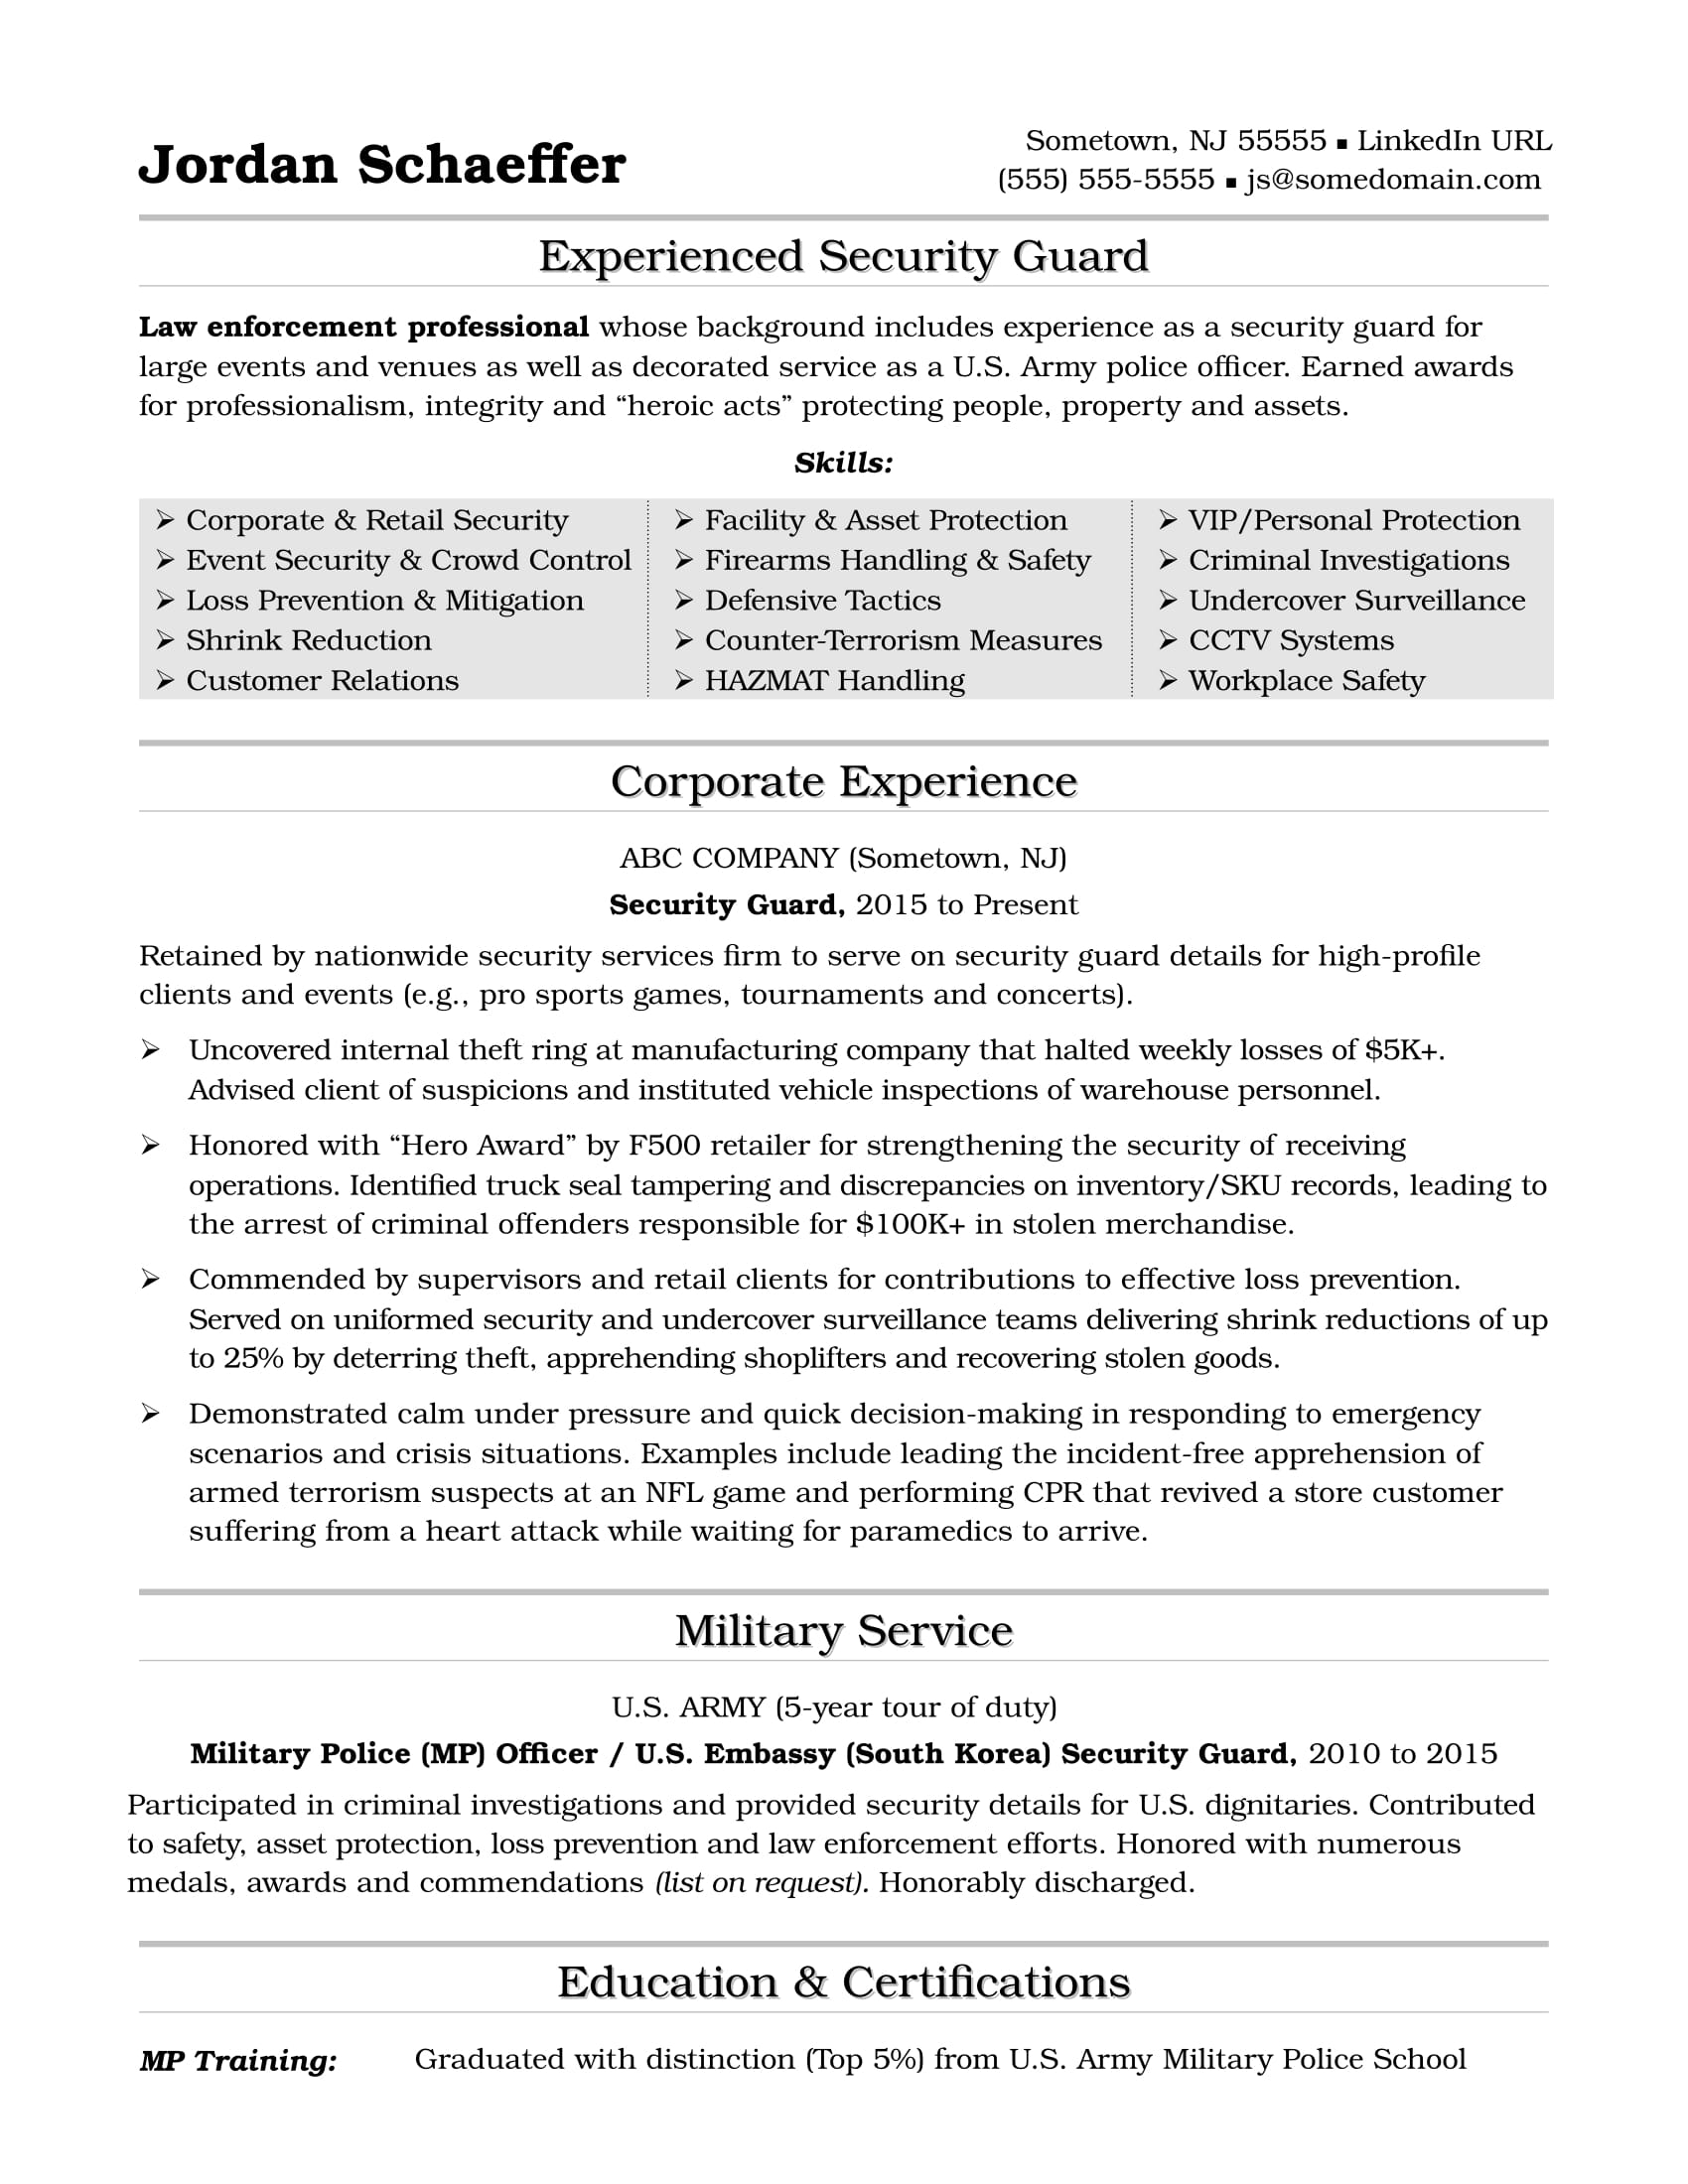 Security Guard Resume Sample | Monster.com